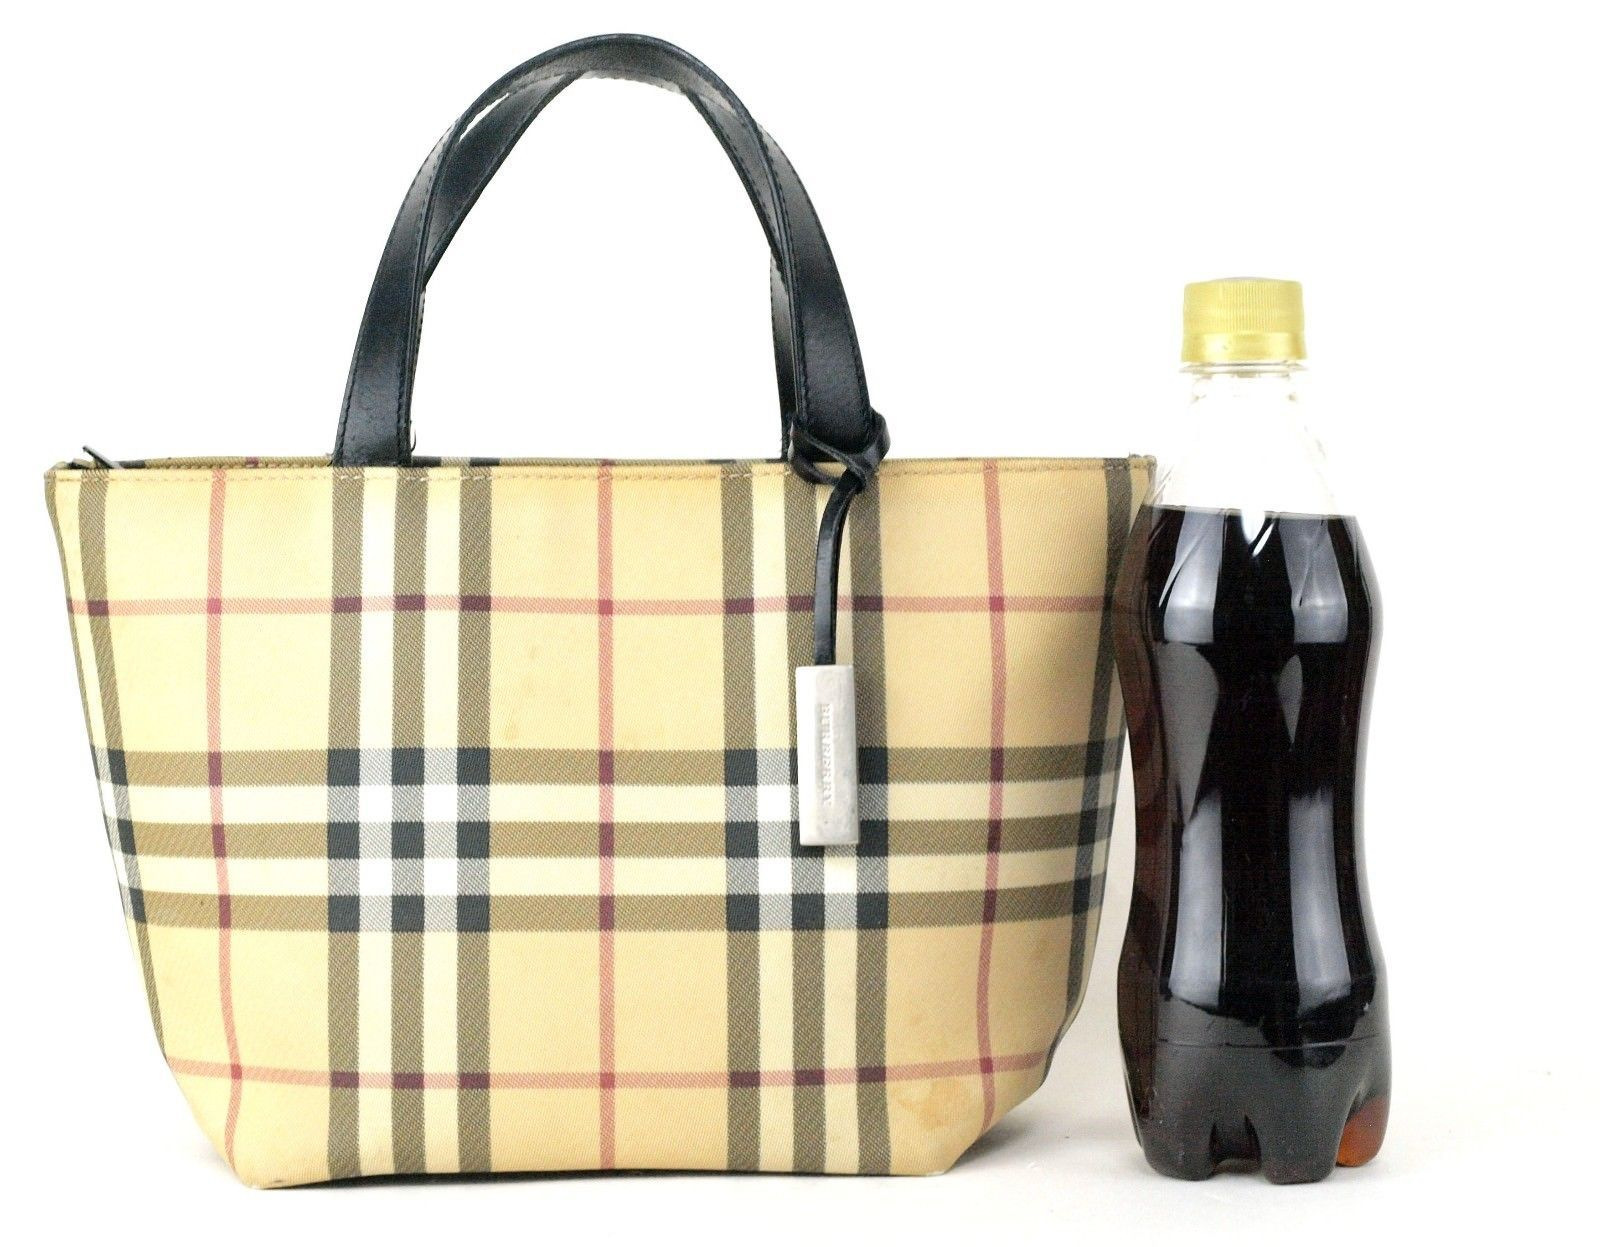 0f4de9771a02 Authentic Burberry London Nova Check PVC and 39 similar items. 57